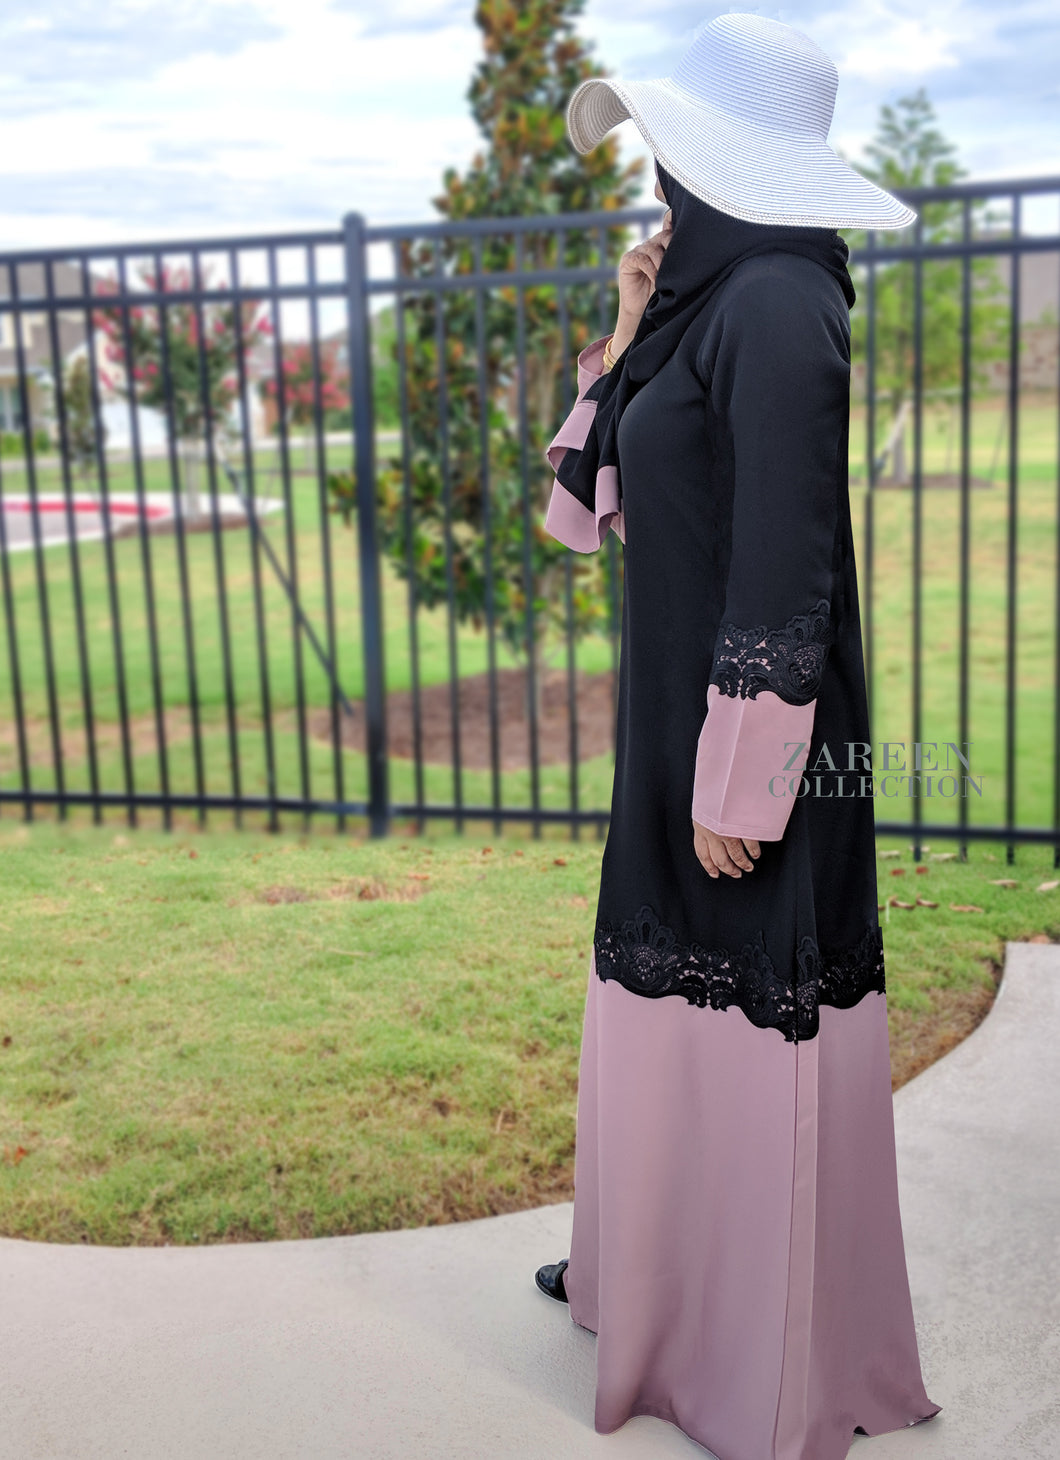 Zareen Collection Luxury Designer abayas lace abaya tahira lace abaya nada fabric dubai abayas abaya fashion muslim clothing islamic clothing shop abayas abayas online hijab fashion muslim fashion modest fashion abaya buth abaya addict shukr annah hariri modanisa sefamerve